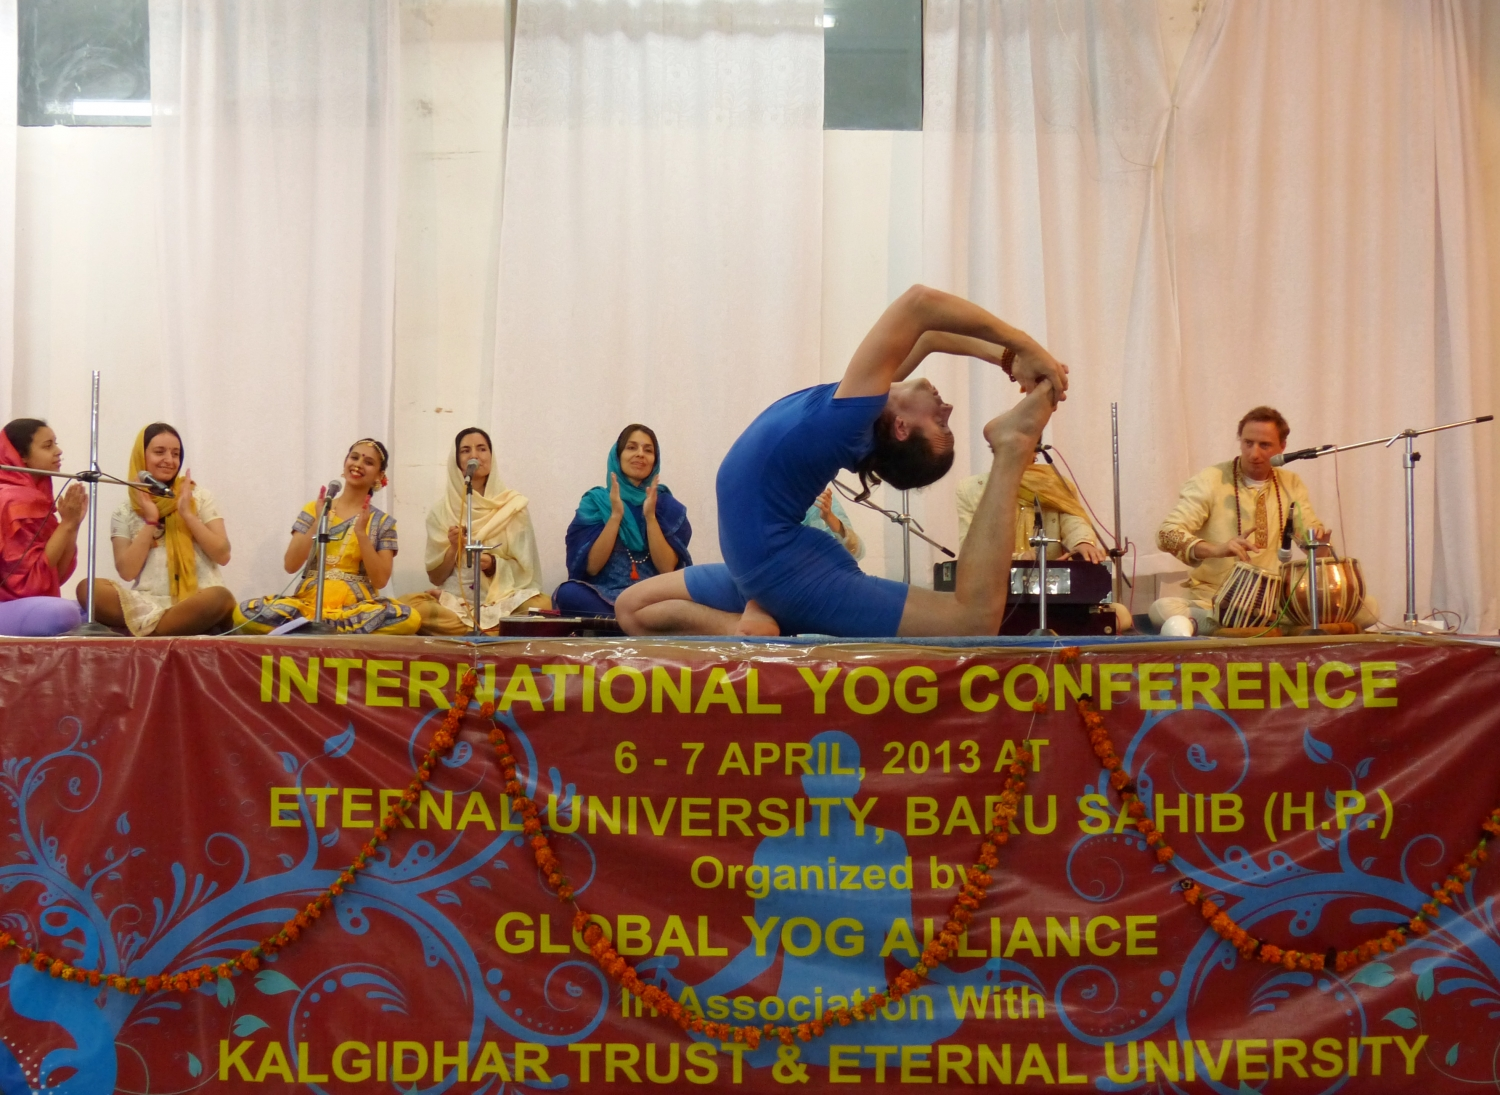 International Yoga Conference - Eternal University, Baru Sahib - 2013, Abril